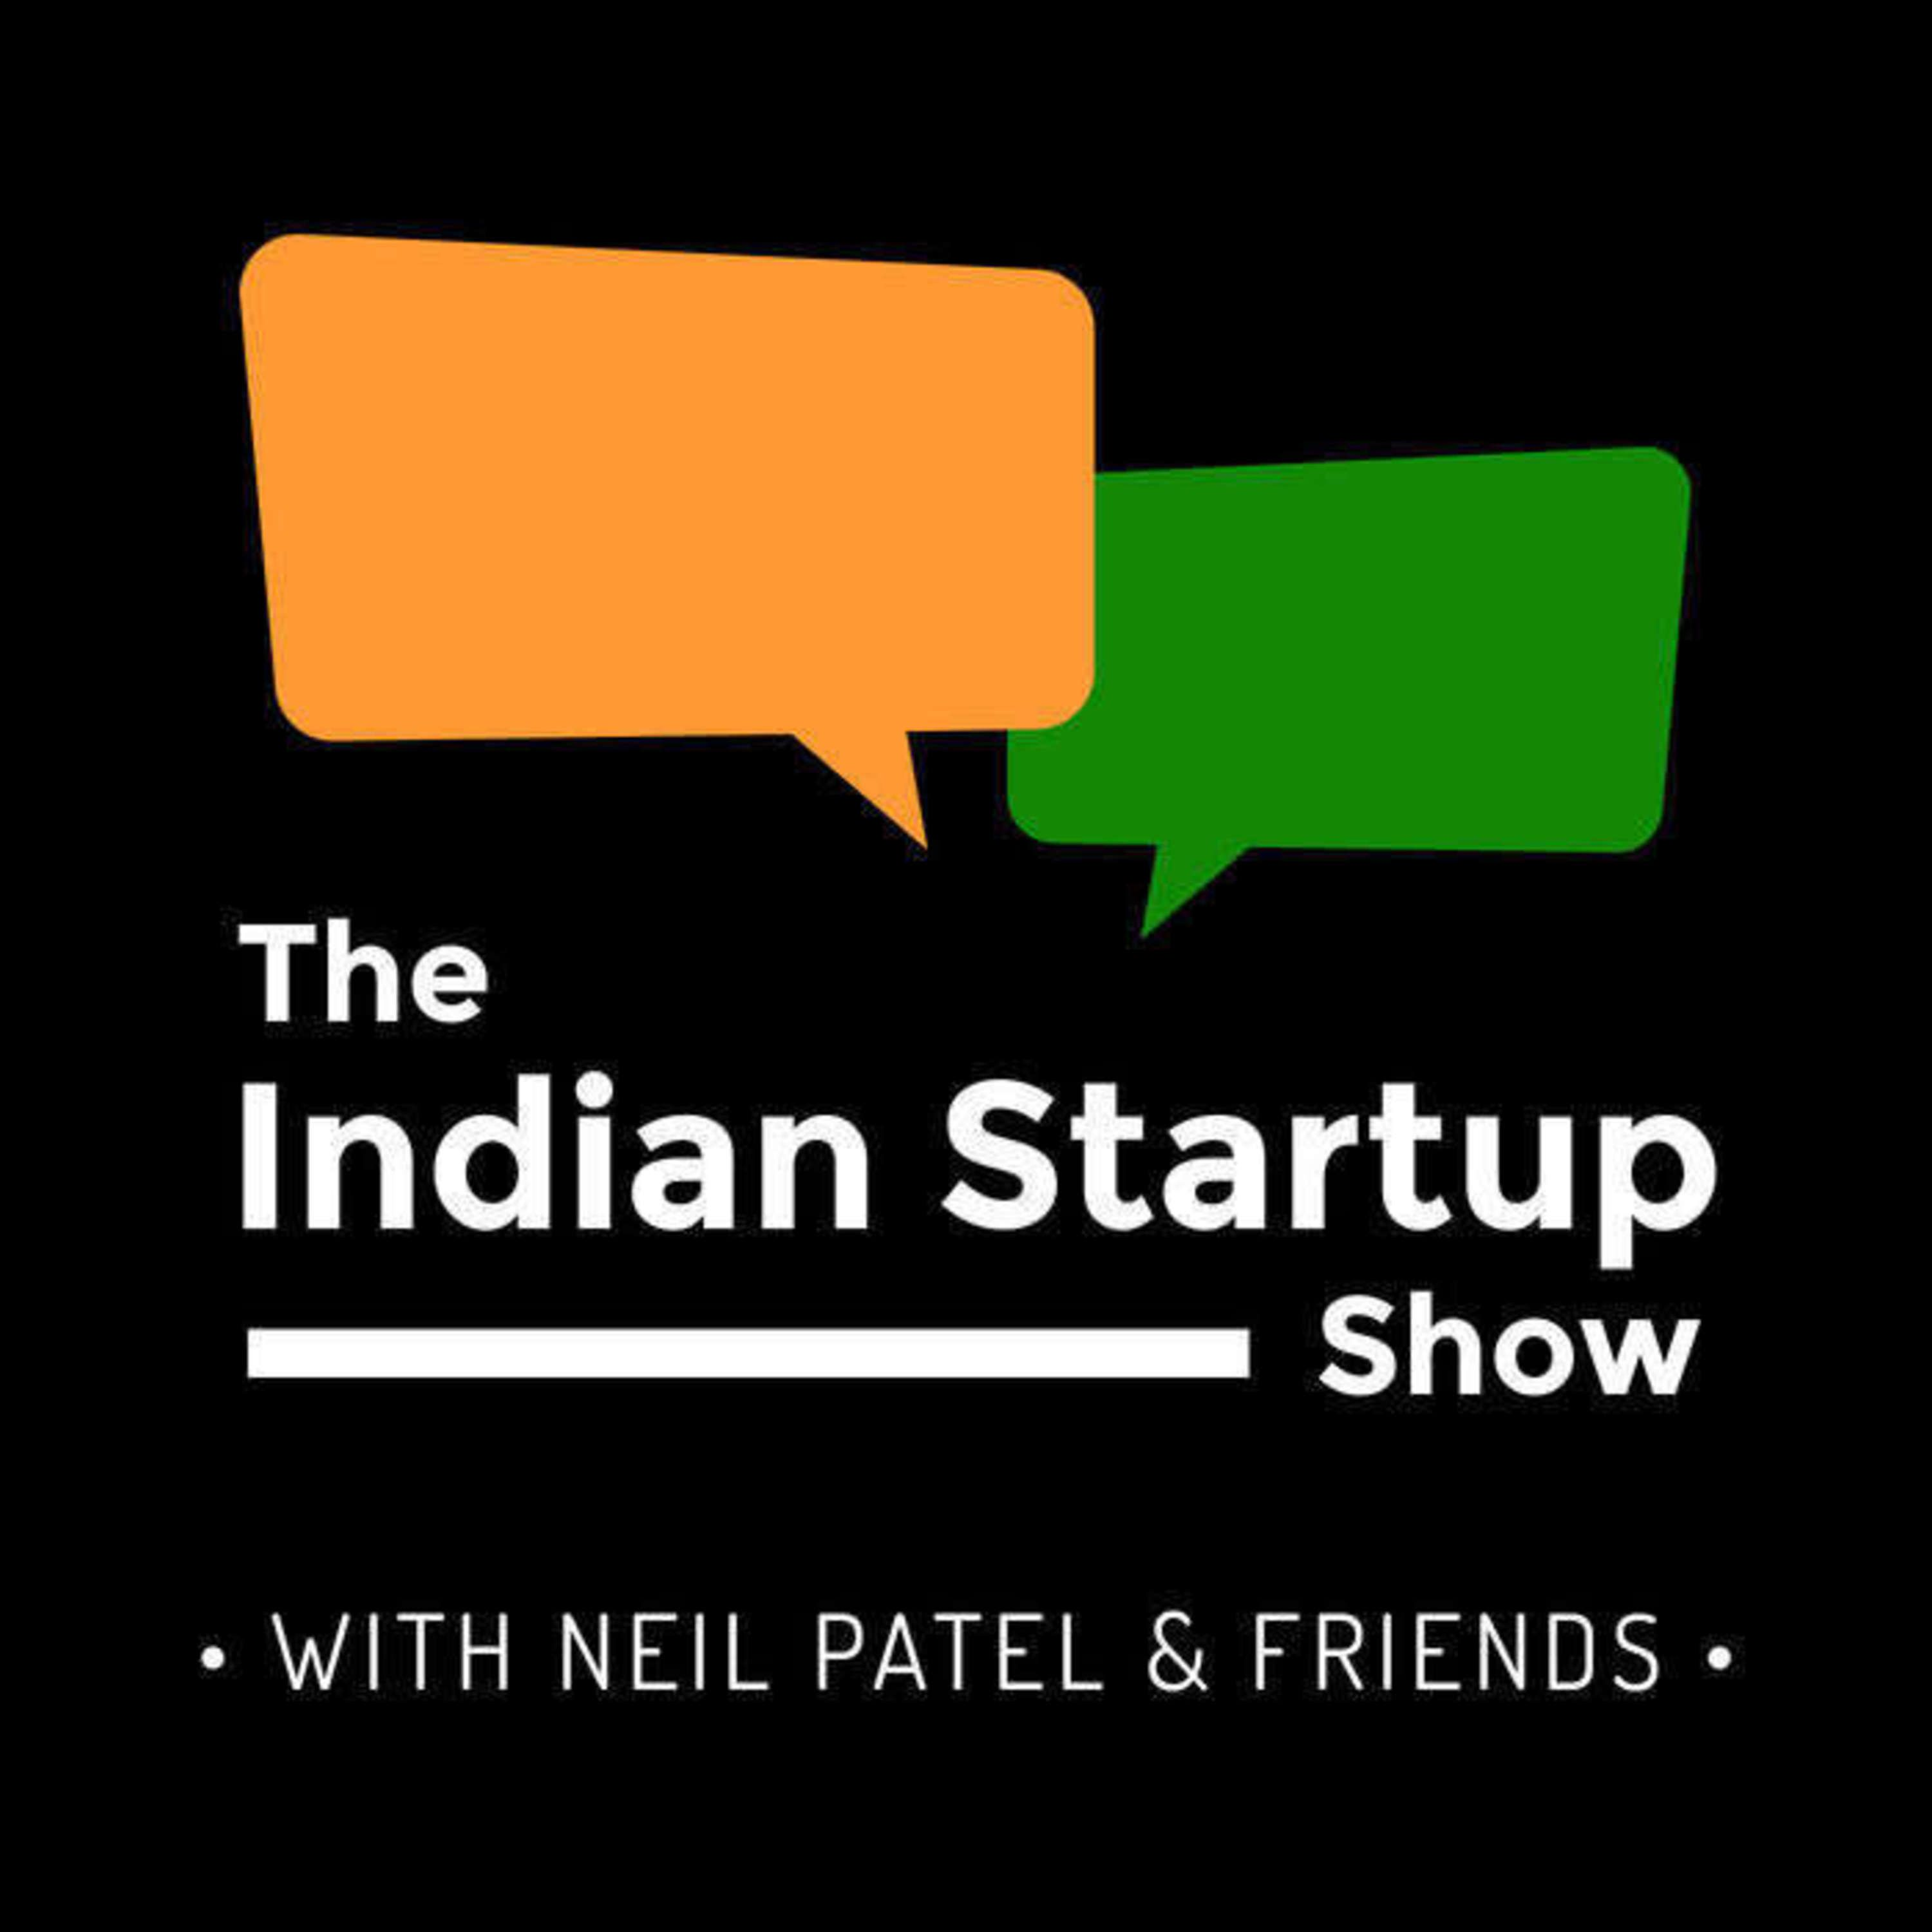 The Startup Guy aka Vijay Anand , Founder of the Startup Centre on the Indian Startup Ecosystem  - where to next?